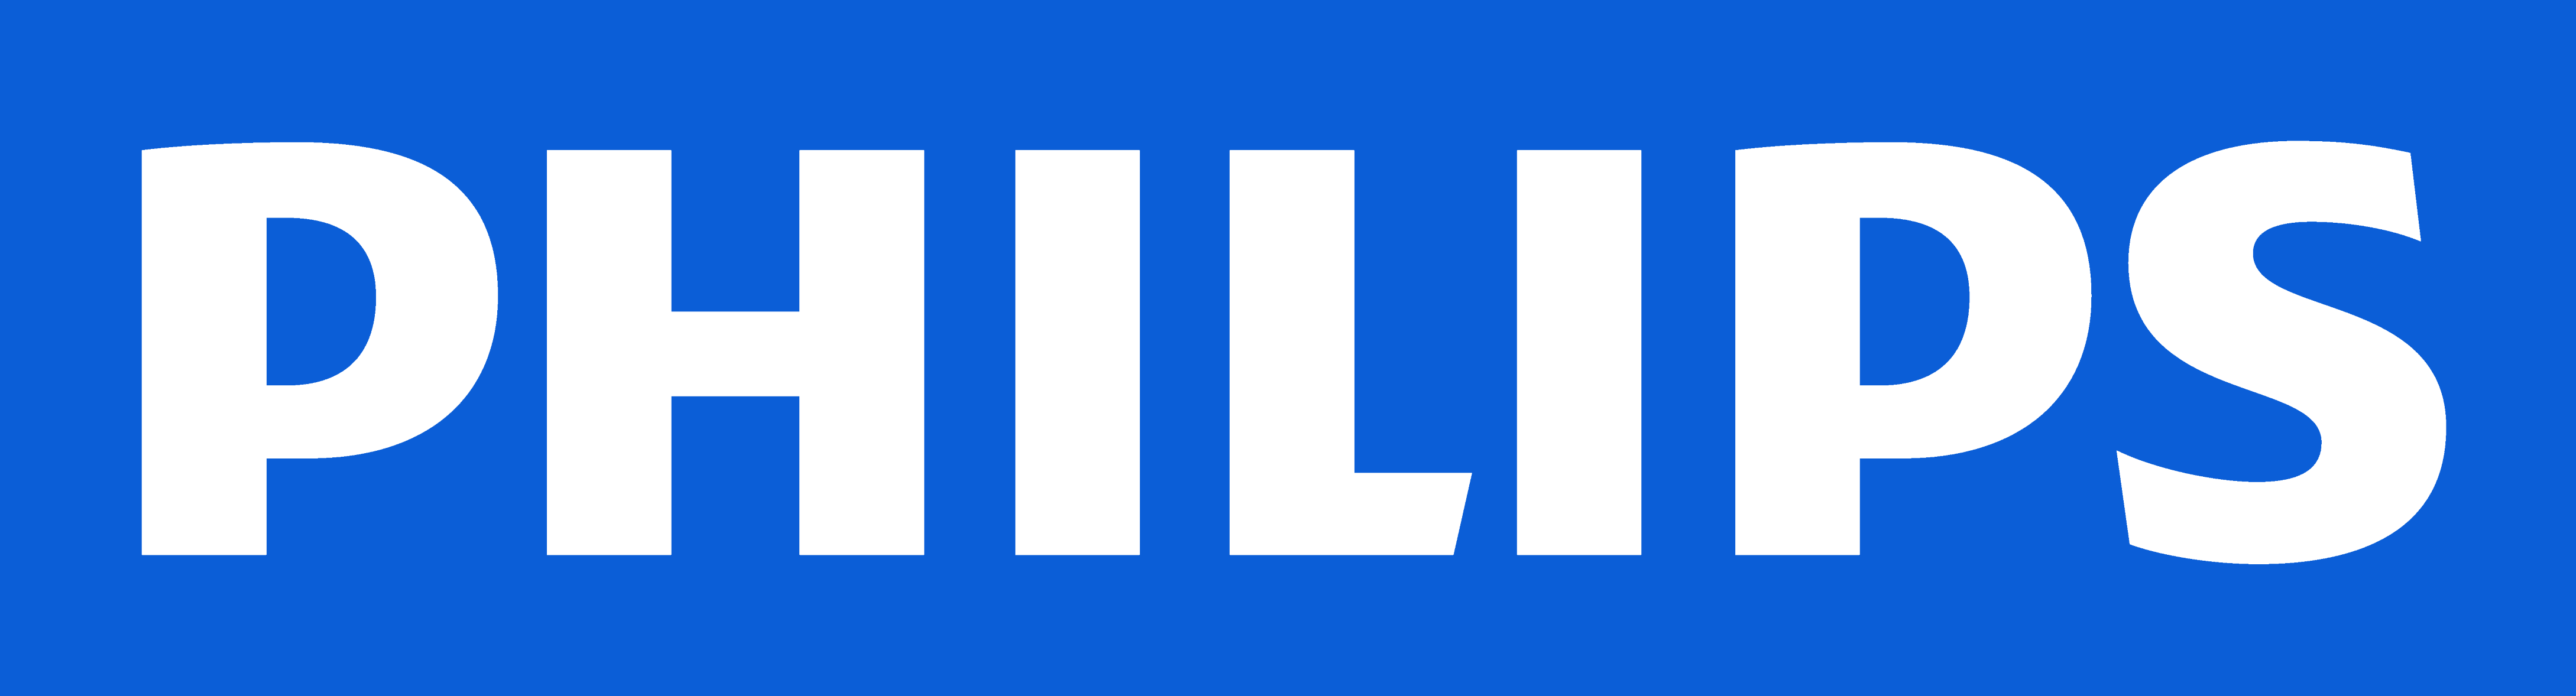 Philips Logo, White Blue - Philips, Transparent background PNG HD thumbnail